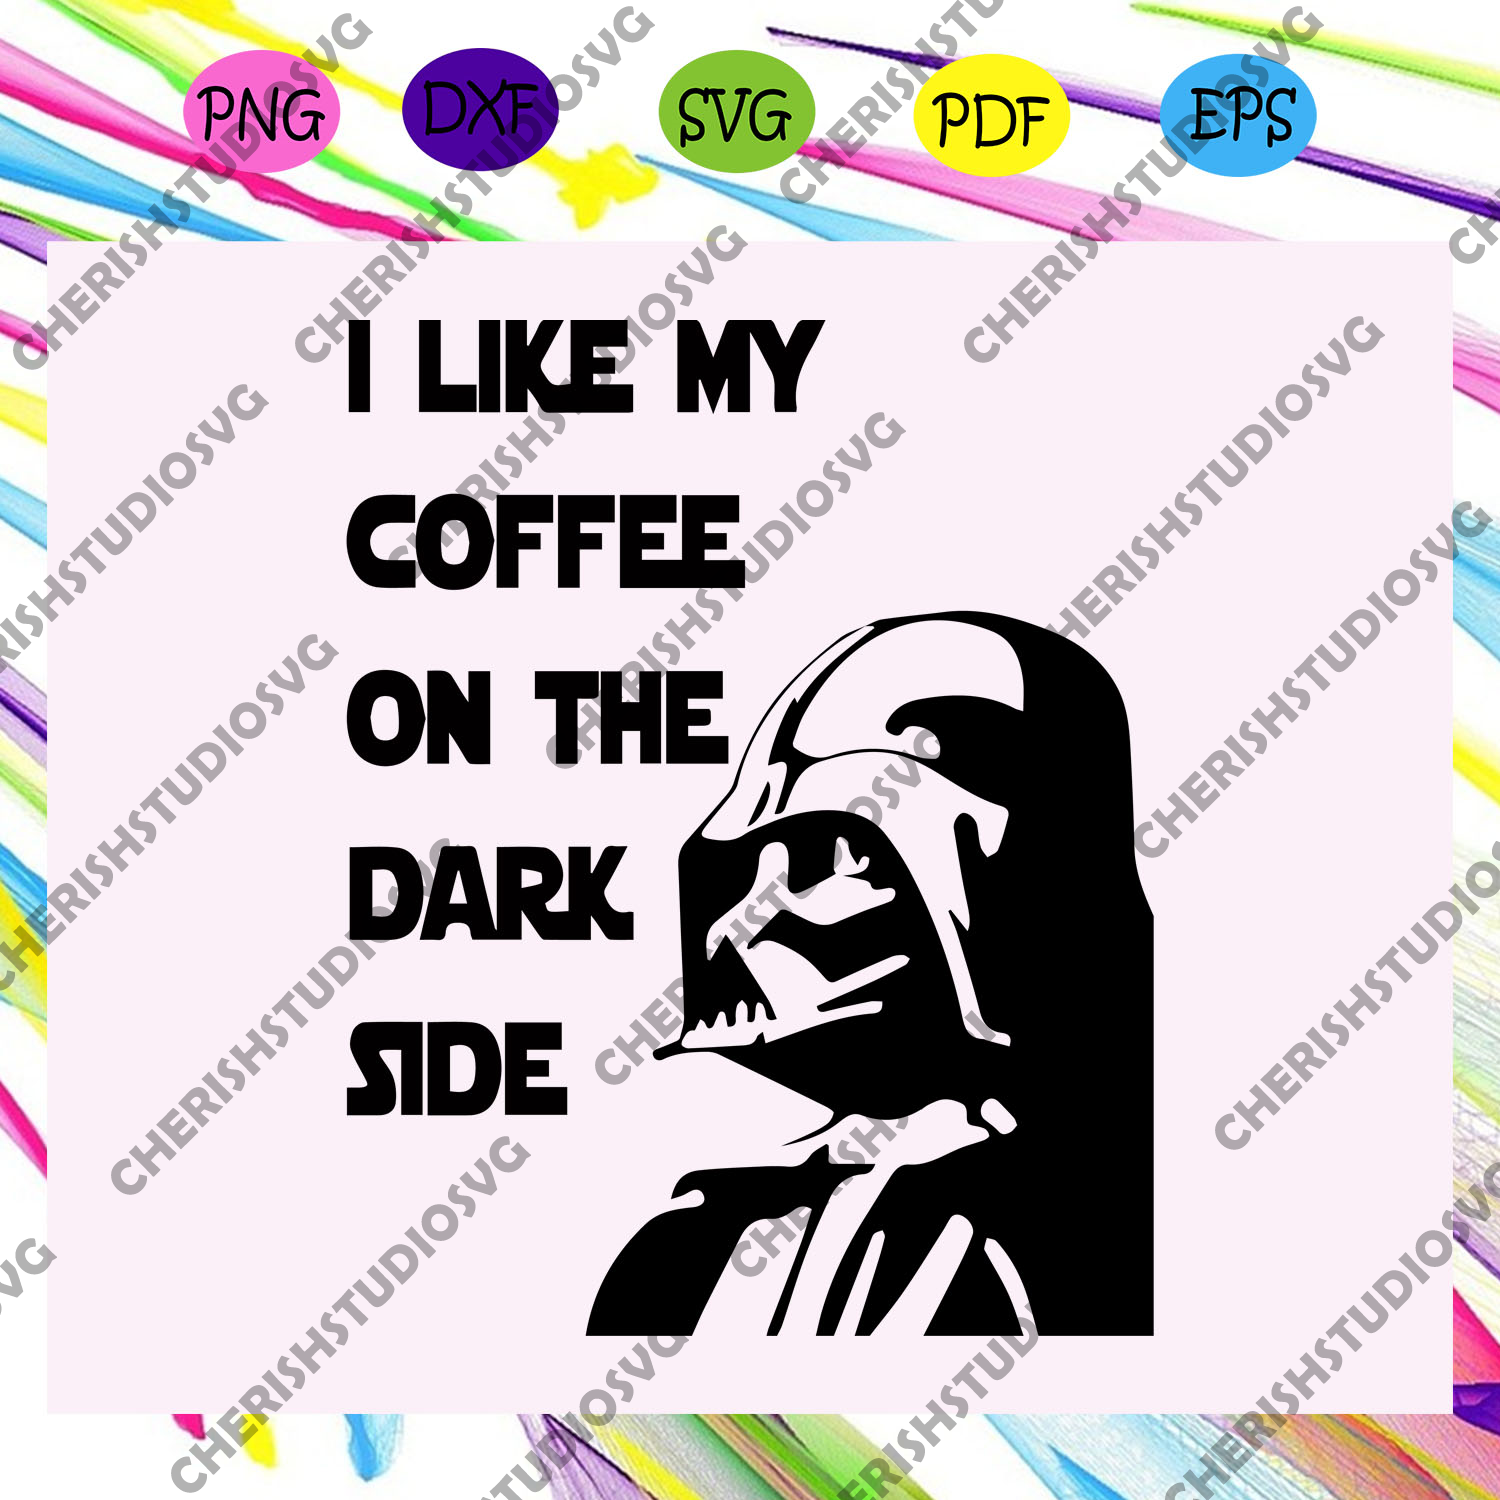 I like my coffee on the dark side, Star Wars svg, Star Wars Gift, jedi svg, yoda svg, leia svg, mandalorian svg, Star Wars shirt, star wars clipart, svg cut files, silhouette svg, cricut svg files, decal and vinyl